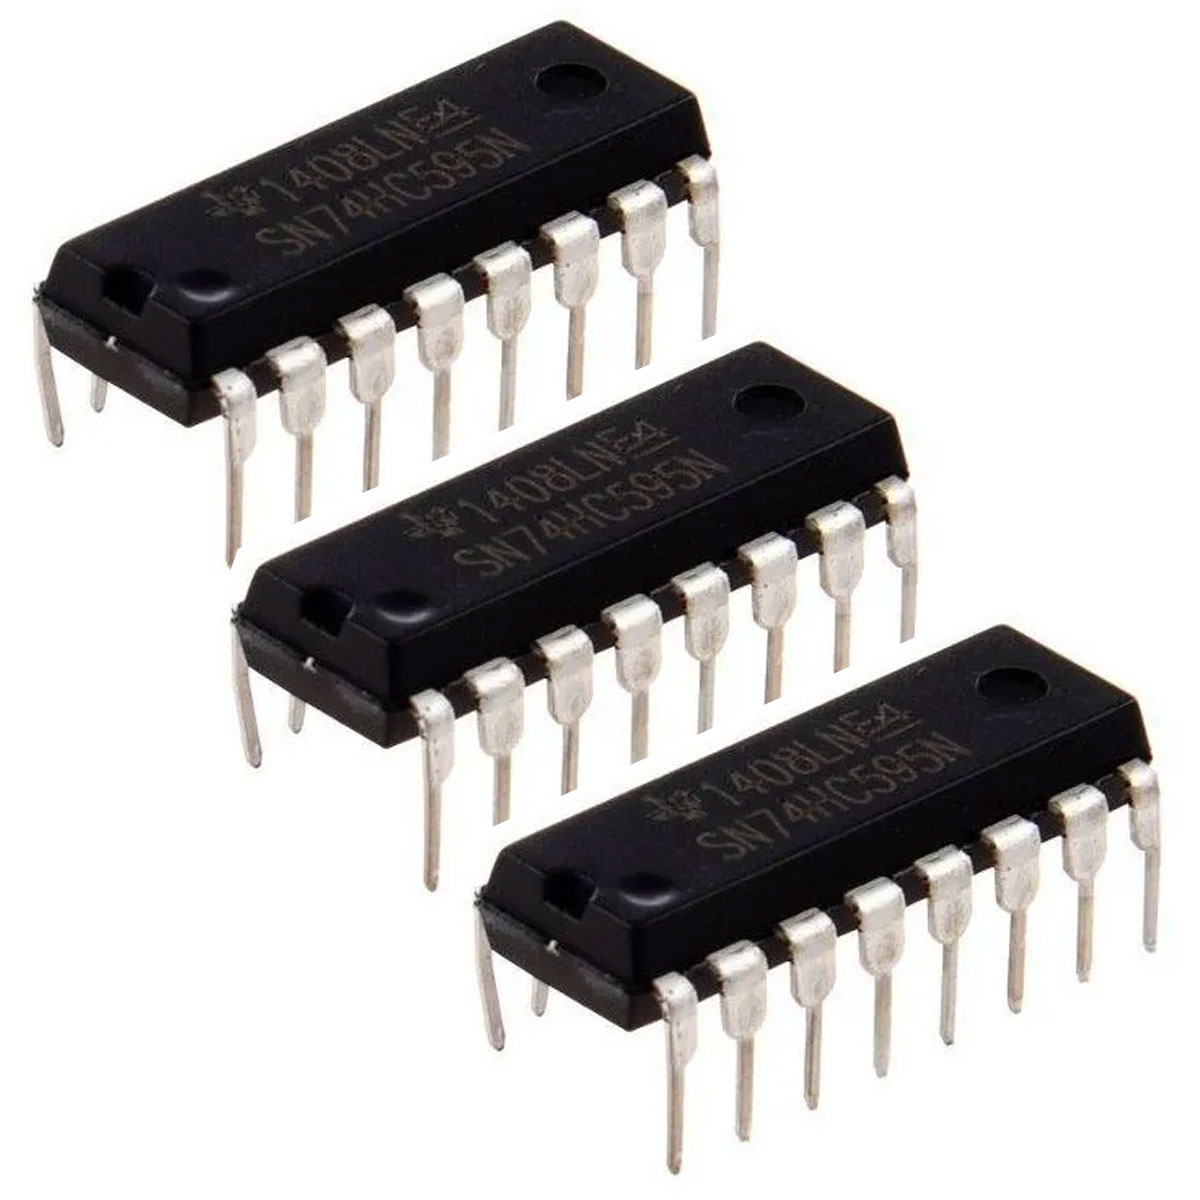 3x Expansor de Portas 74HC595 Shift Register 8bit